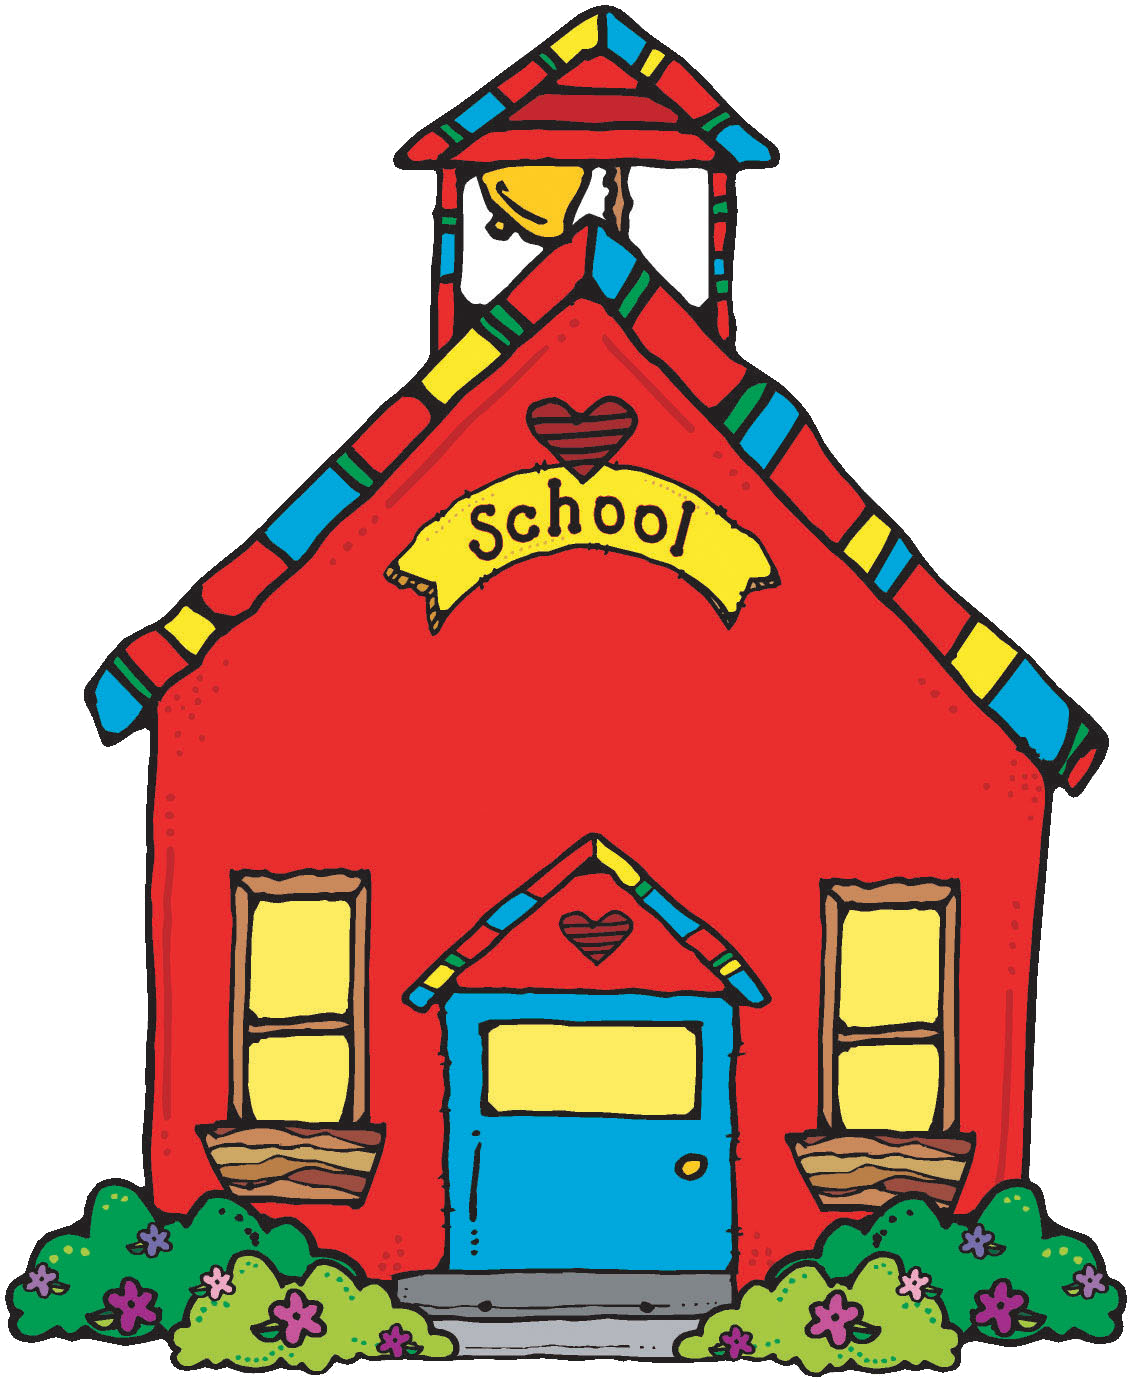 School Elementary Clip Art Clipart Collection Transparent Png - AZPng vector royalty free library